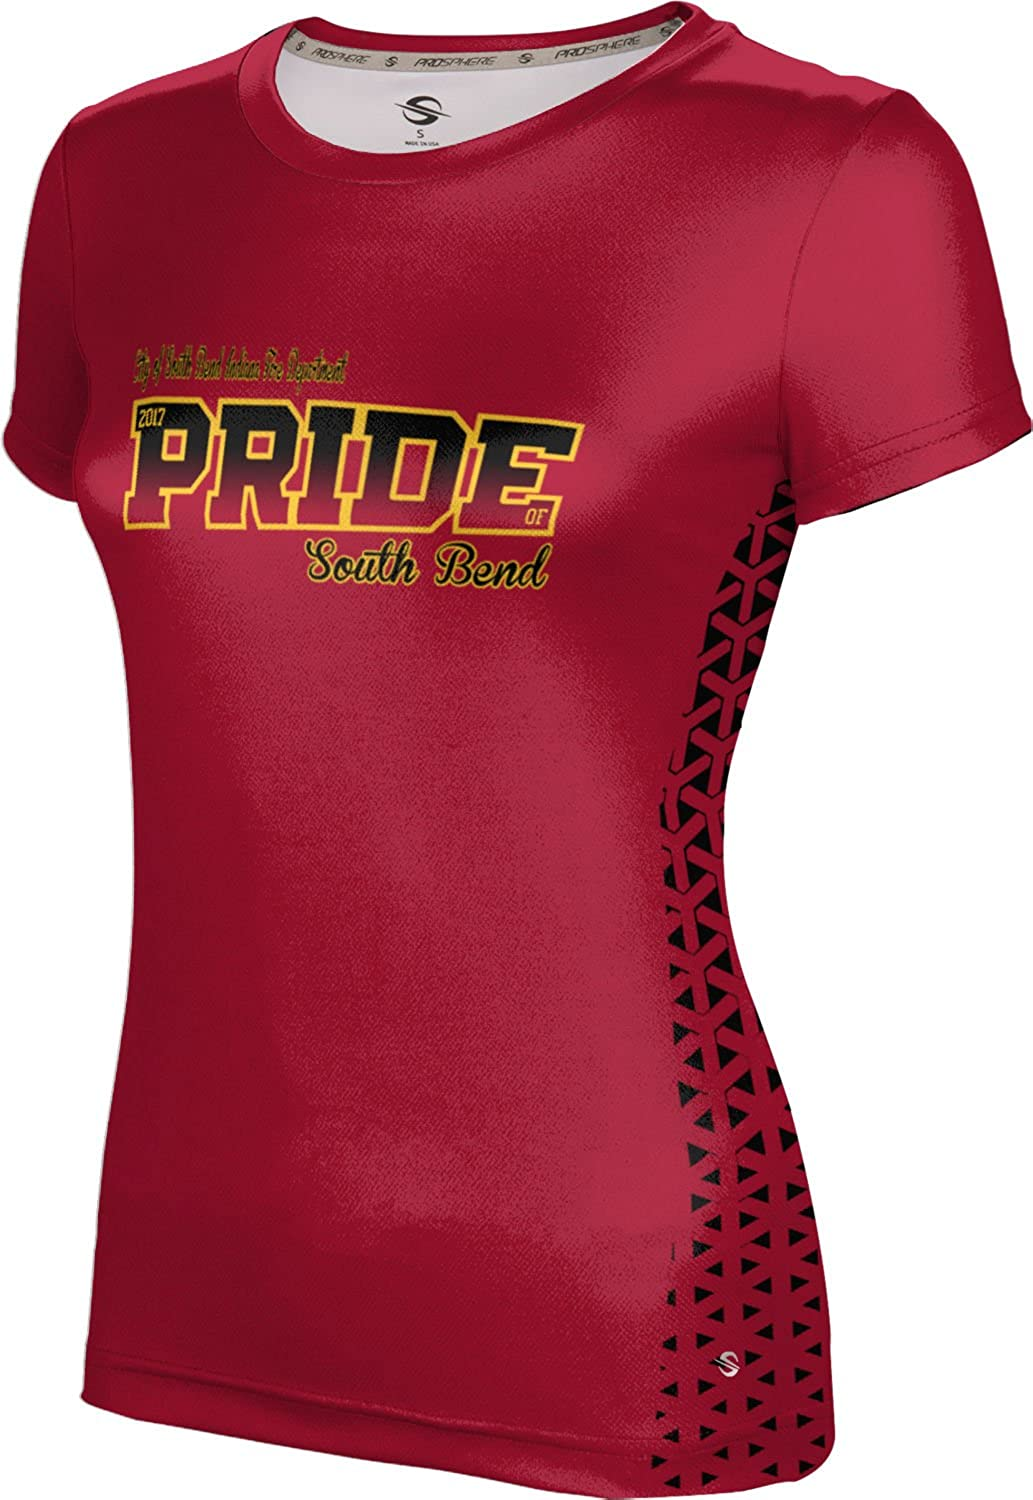 Women's City of South Bend Indiana Fire Department Gov-Fire-Police Geometric Tech Tee